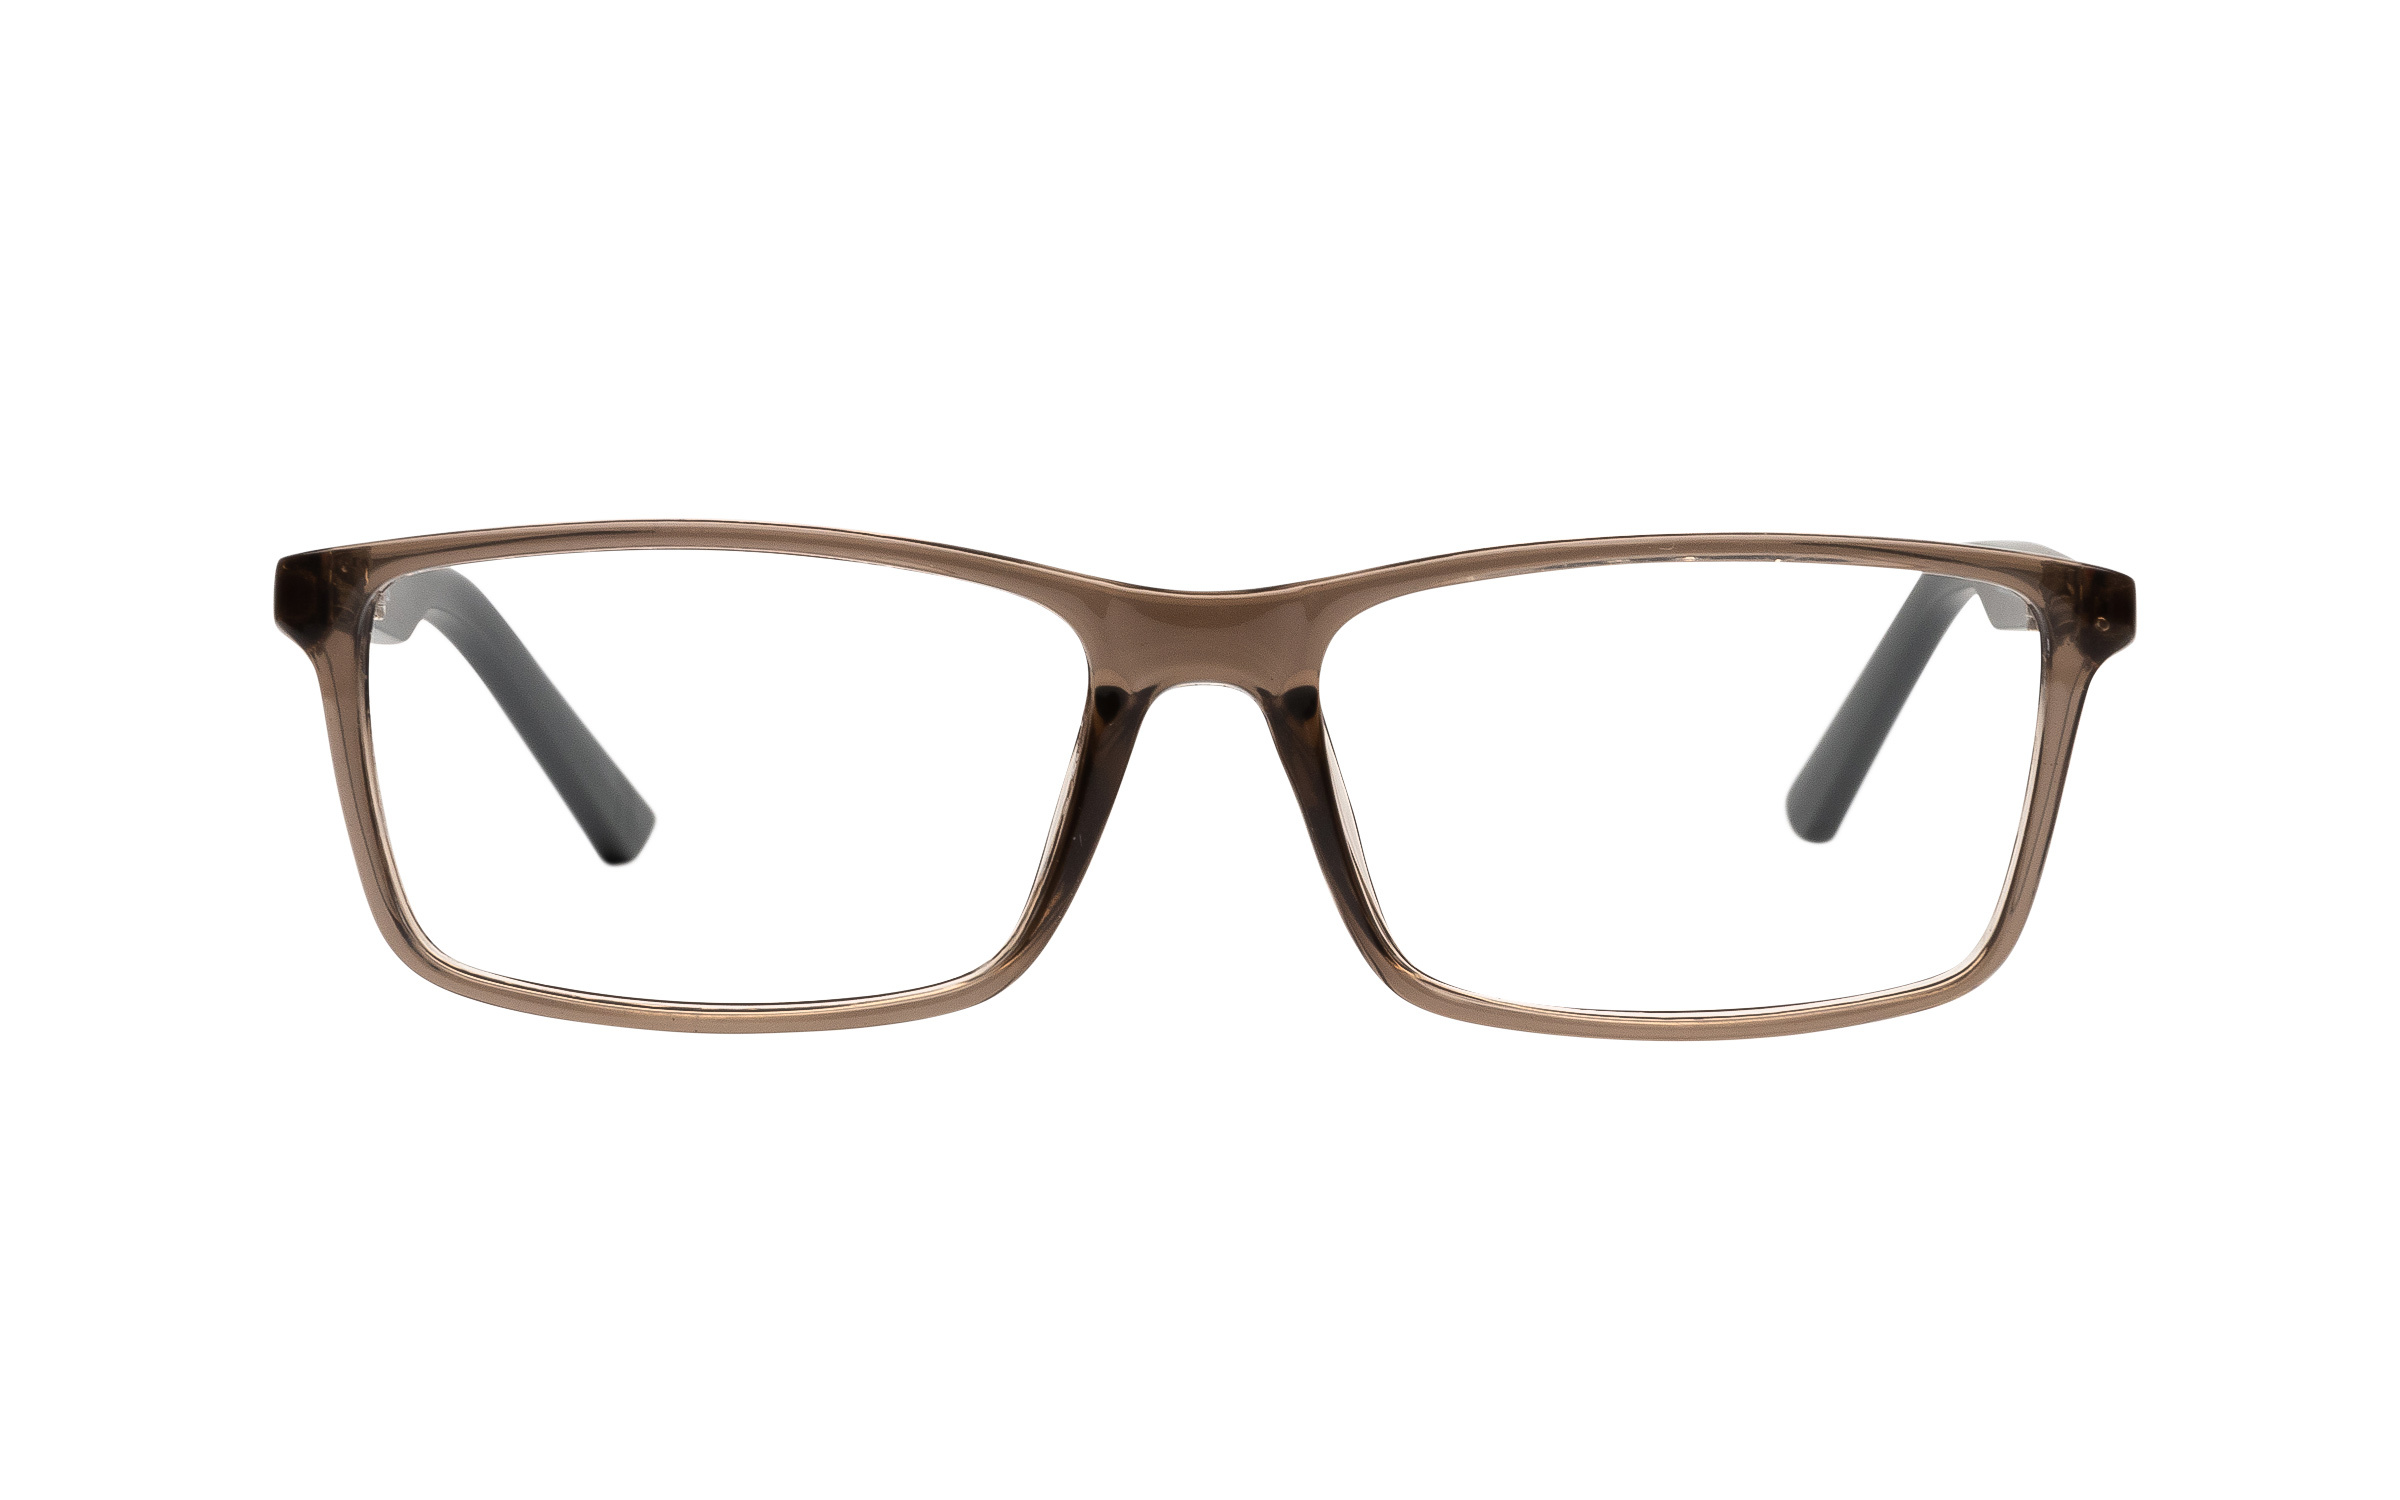 Clearly Basics Pinawa CLS033 C03 (52) Eyeglasses and Frame in Shiny Crystal Grey | Plastic - Online